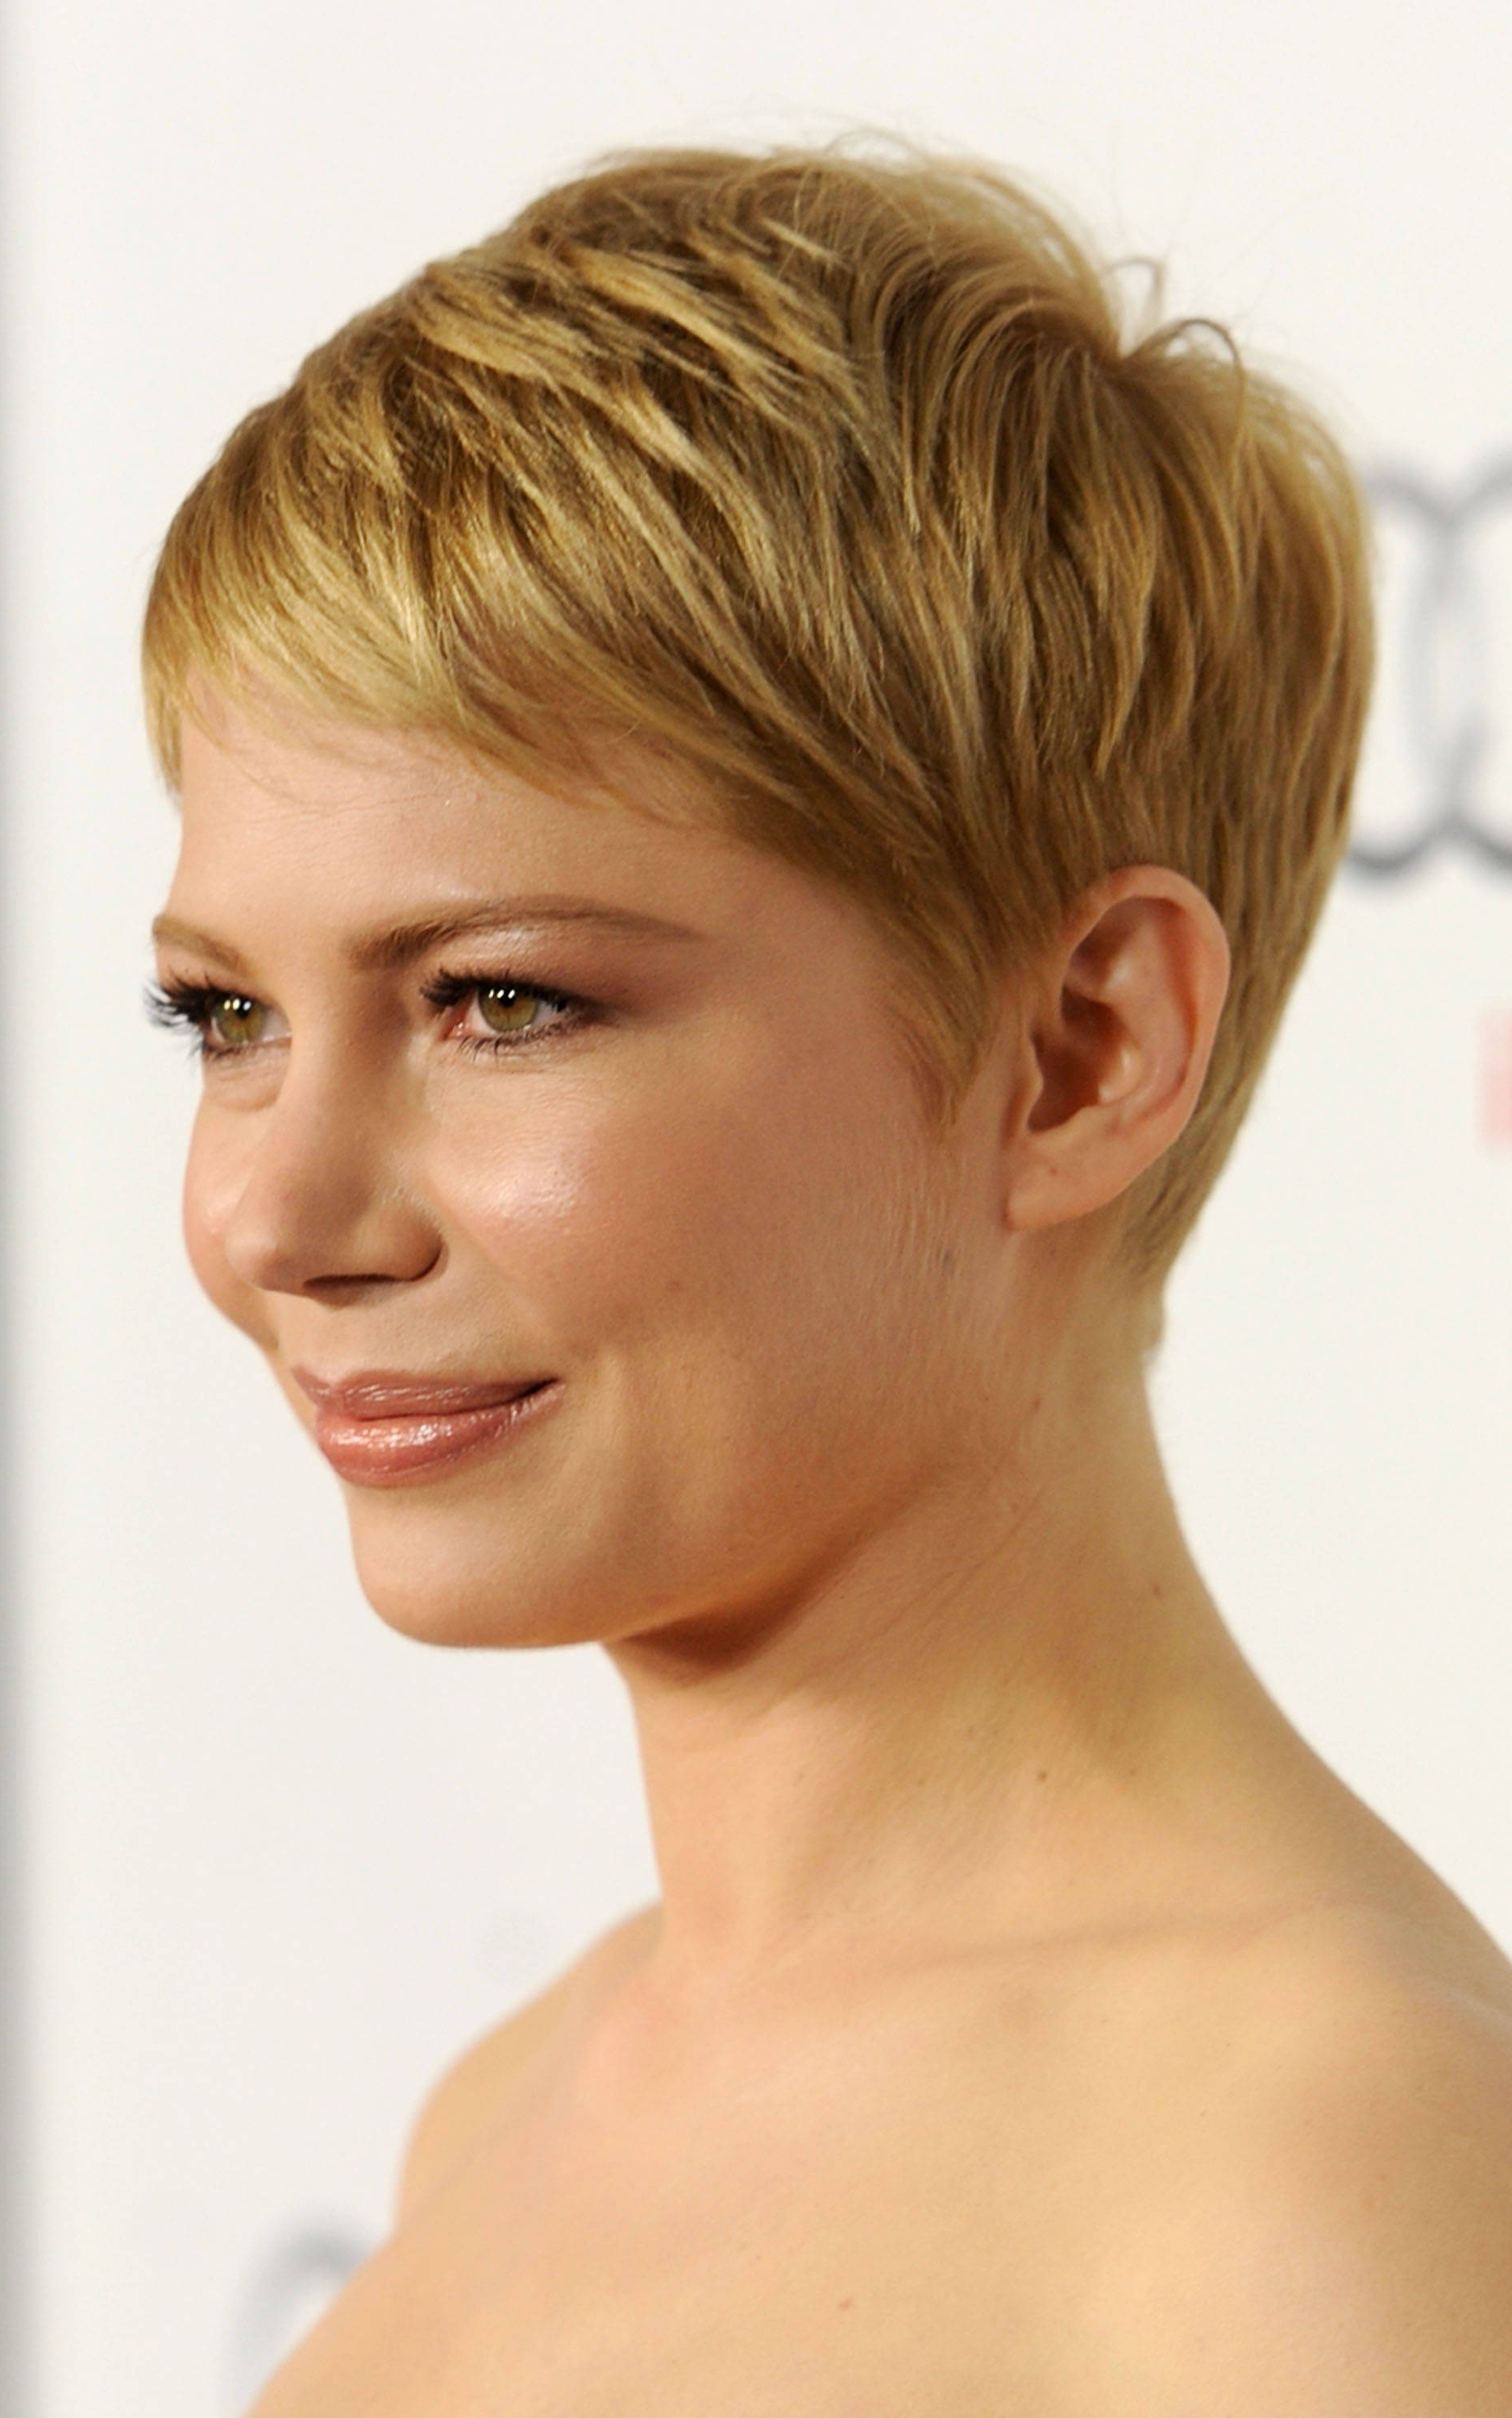 Pics Of Womens Short Hairstyles Elegant 30 Trendy Pixie Hairstyles Regarding Most Up To Date Kids Pixie Hairstyles (View 13 of 15)